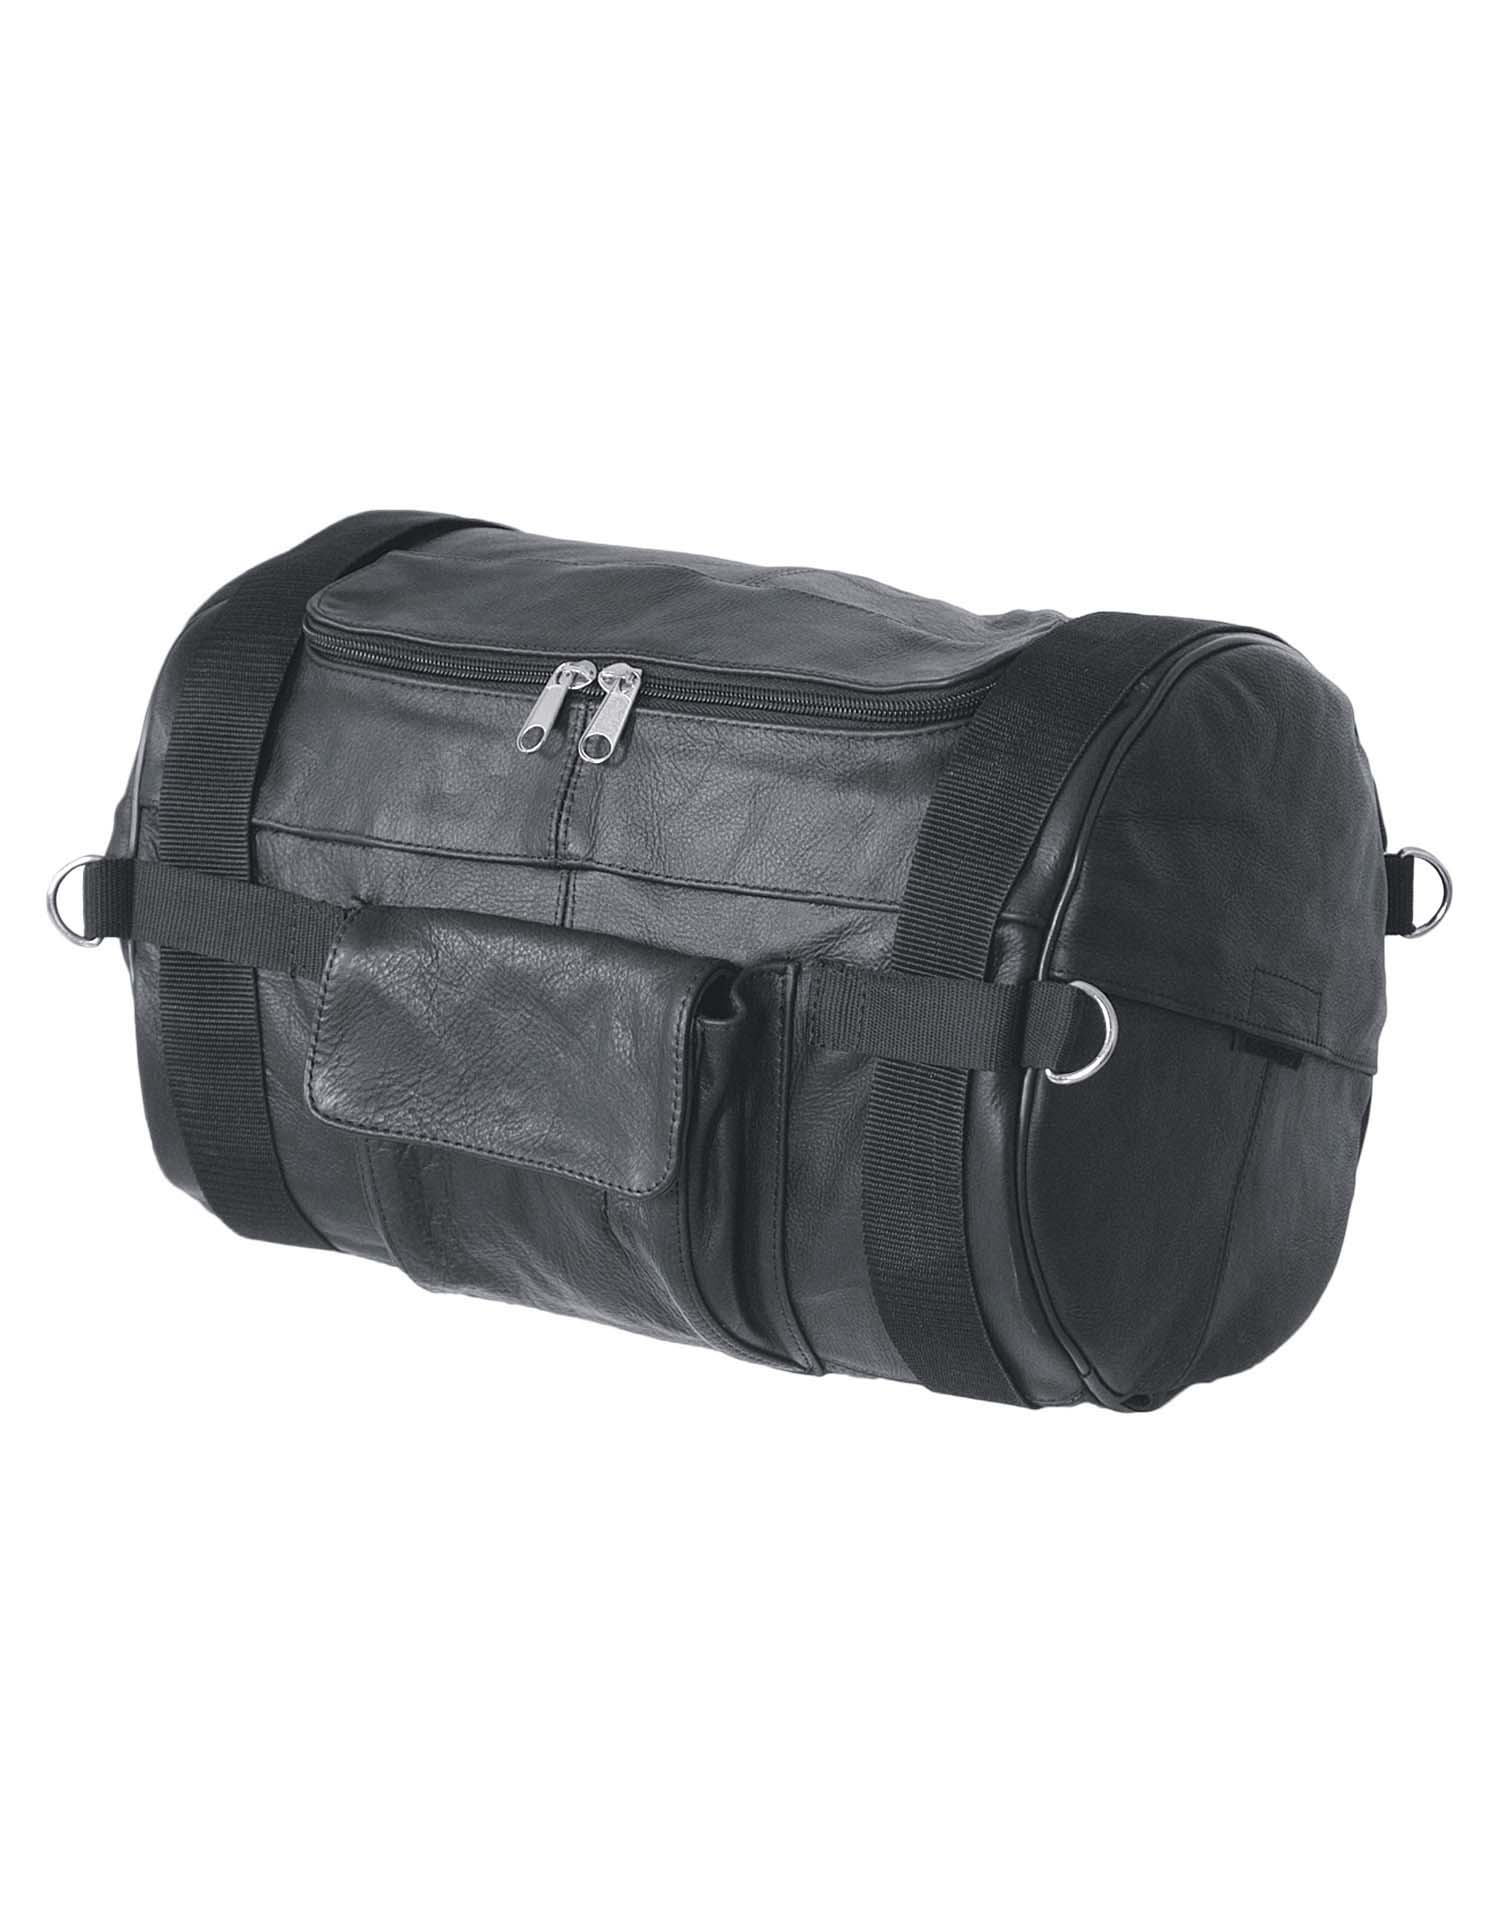 "Black Leather Duffel Bag with Rain Cover, 14""W x 10""H"